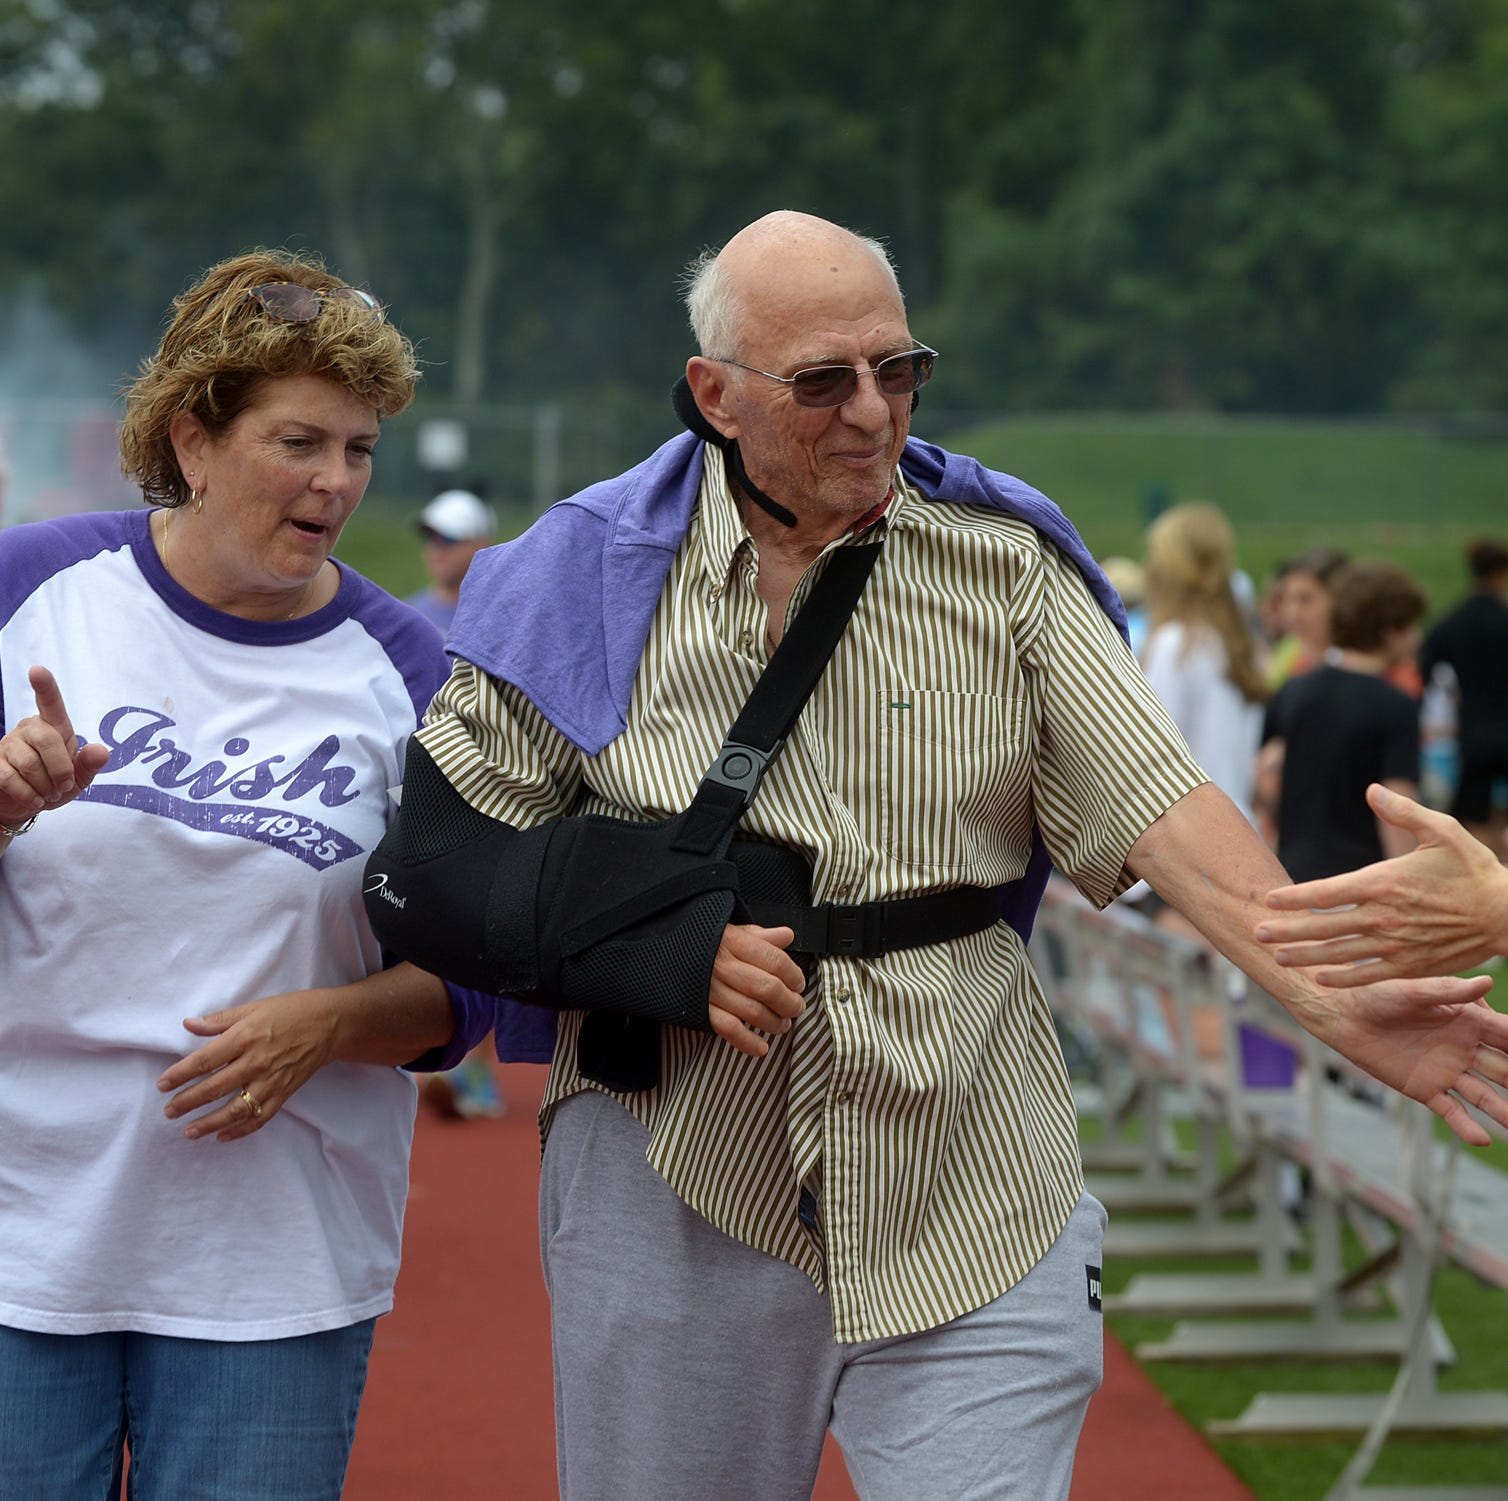 Father Ryan breaks record for most money per capita raised in Relay for Life event